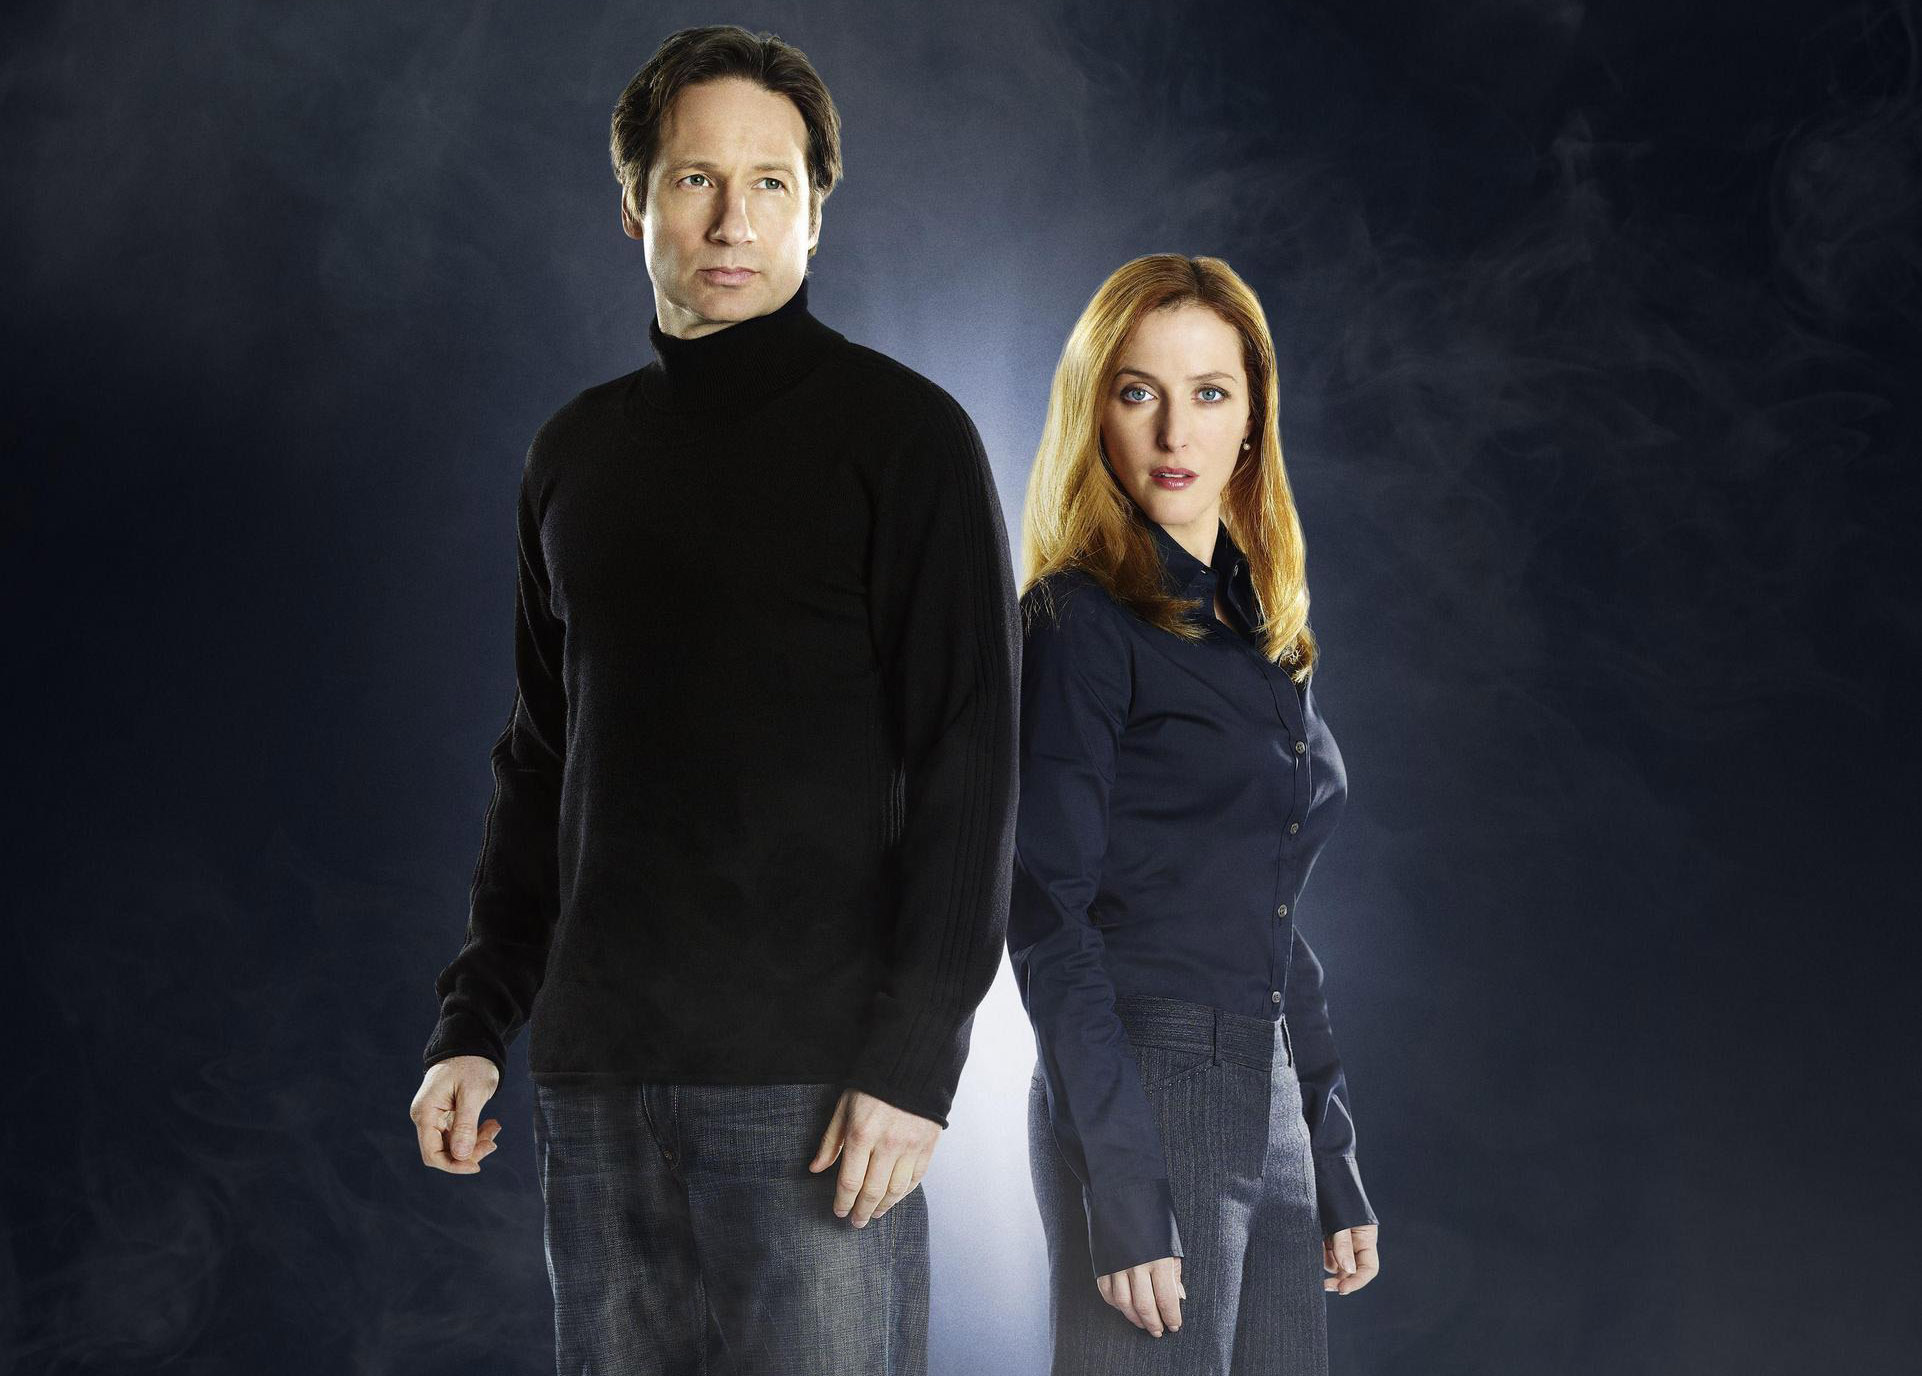 The X Files Wallpaper - X Files I Want To Believe Movie Poster , HD Wallpaper & Backgrounds